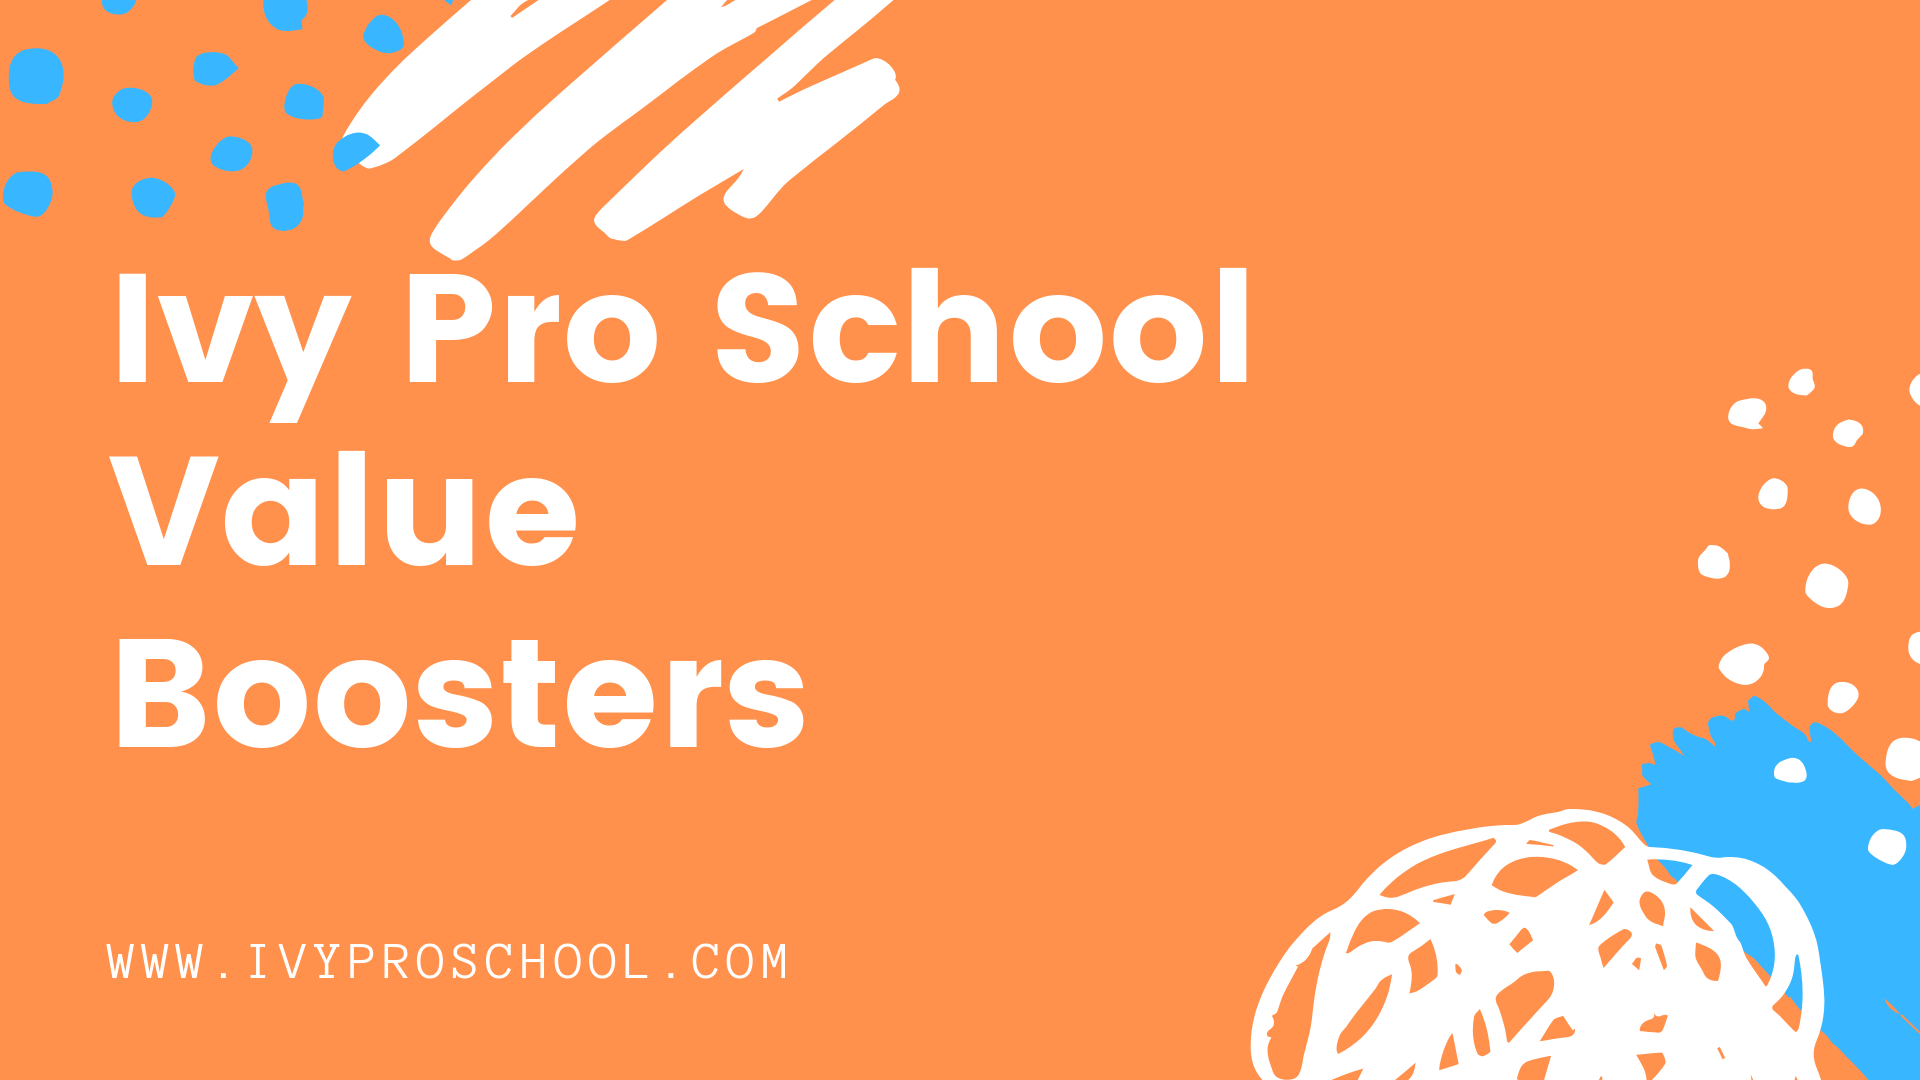 Ivy Pro School Value Boosters